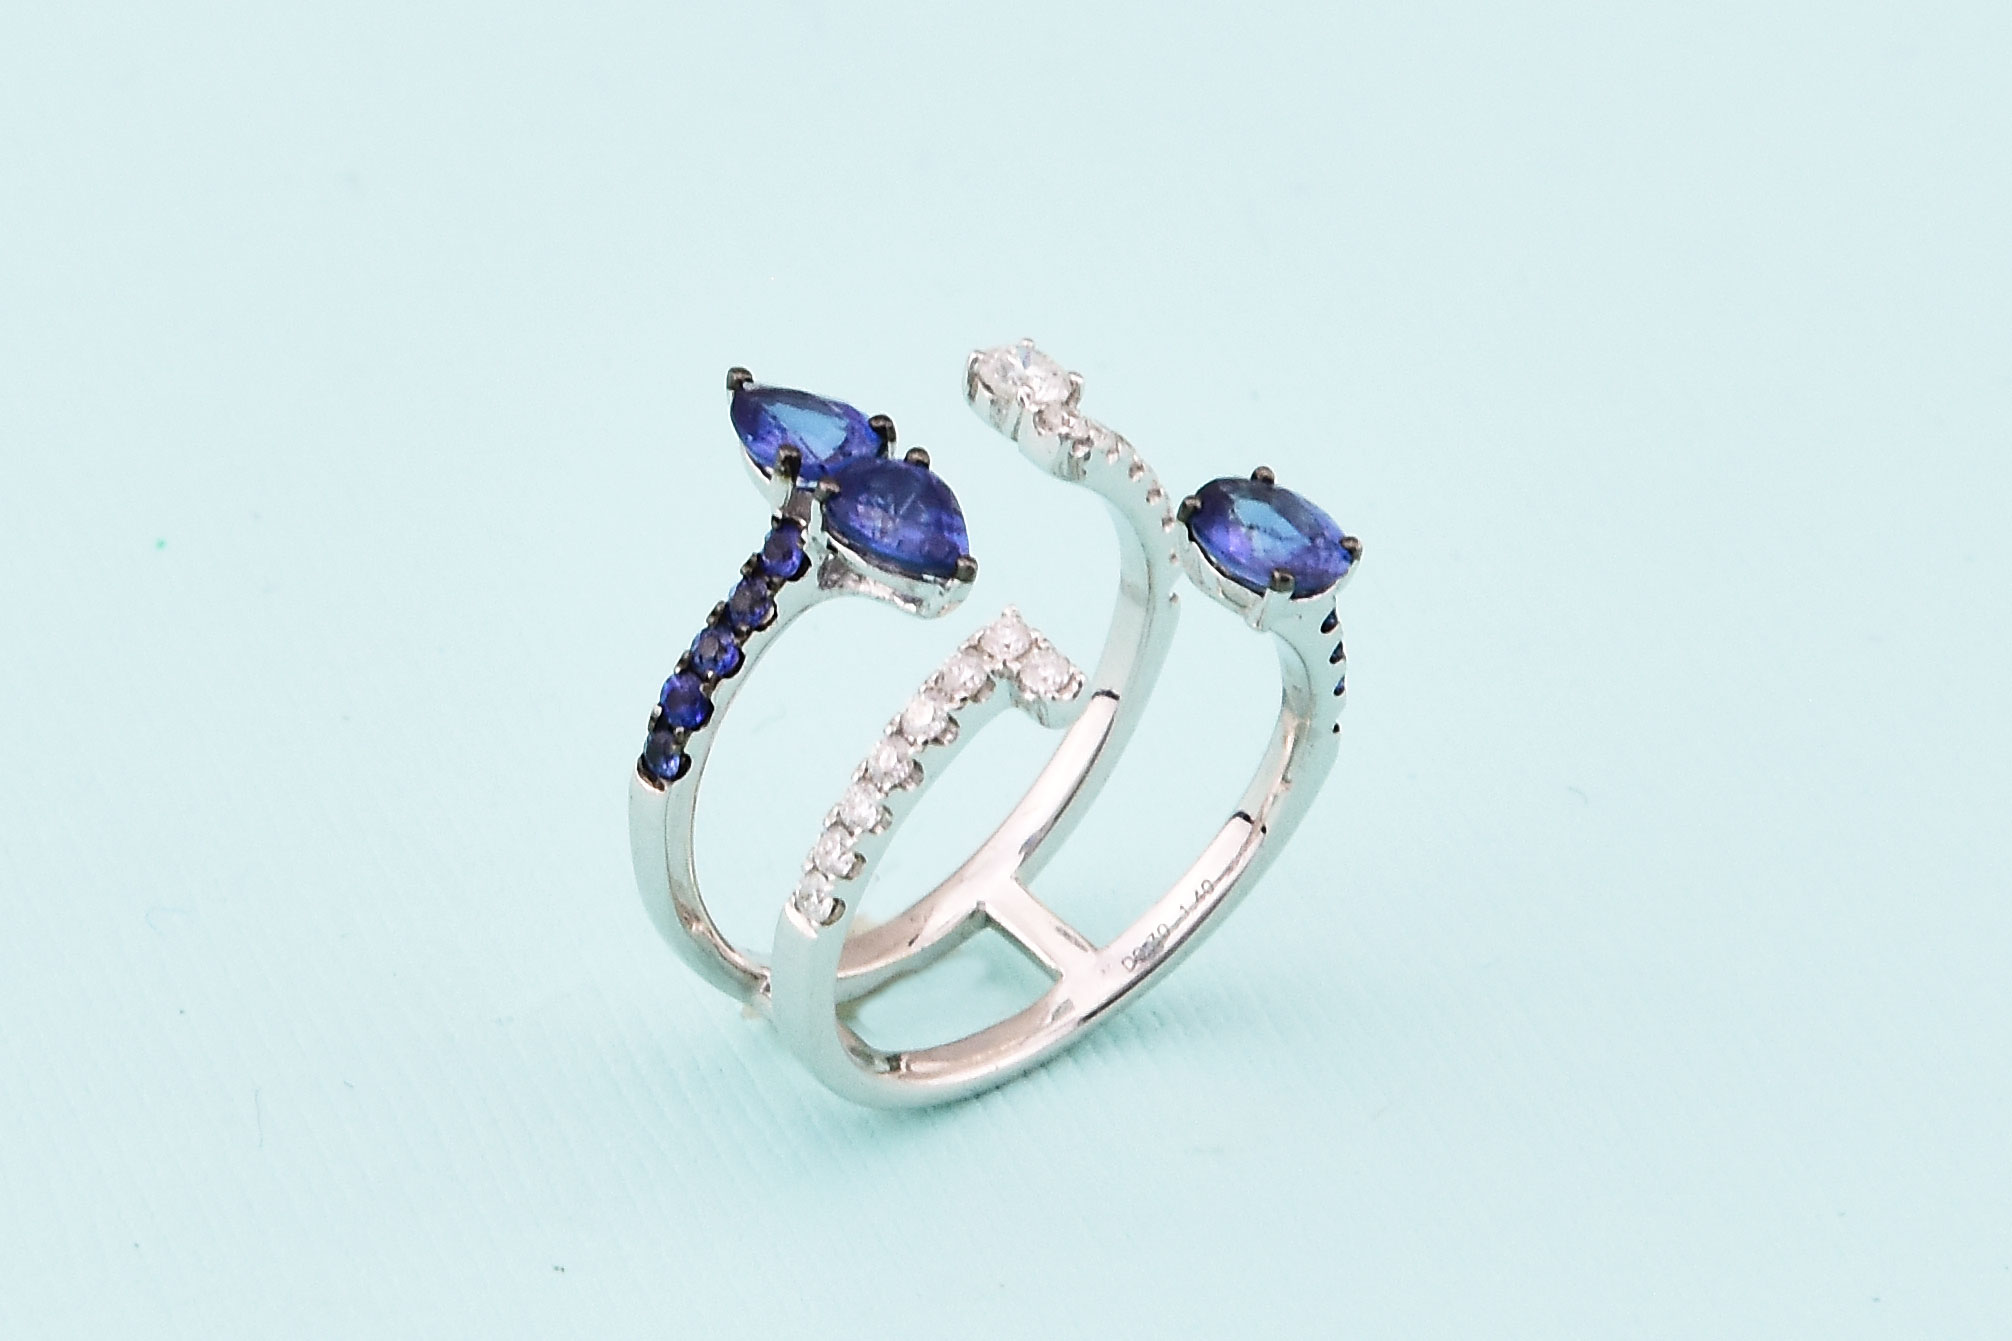 Almost 1.50 Carats Total Weight Sapphire Cocktail Ring